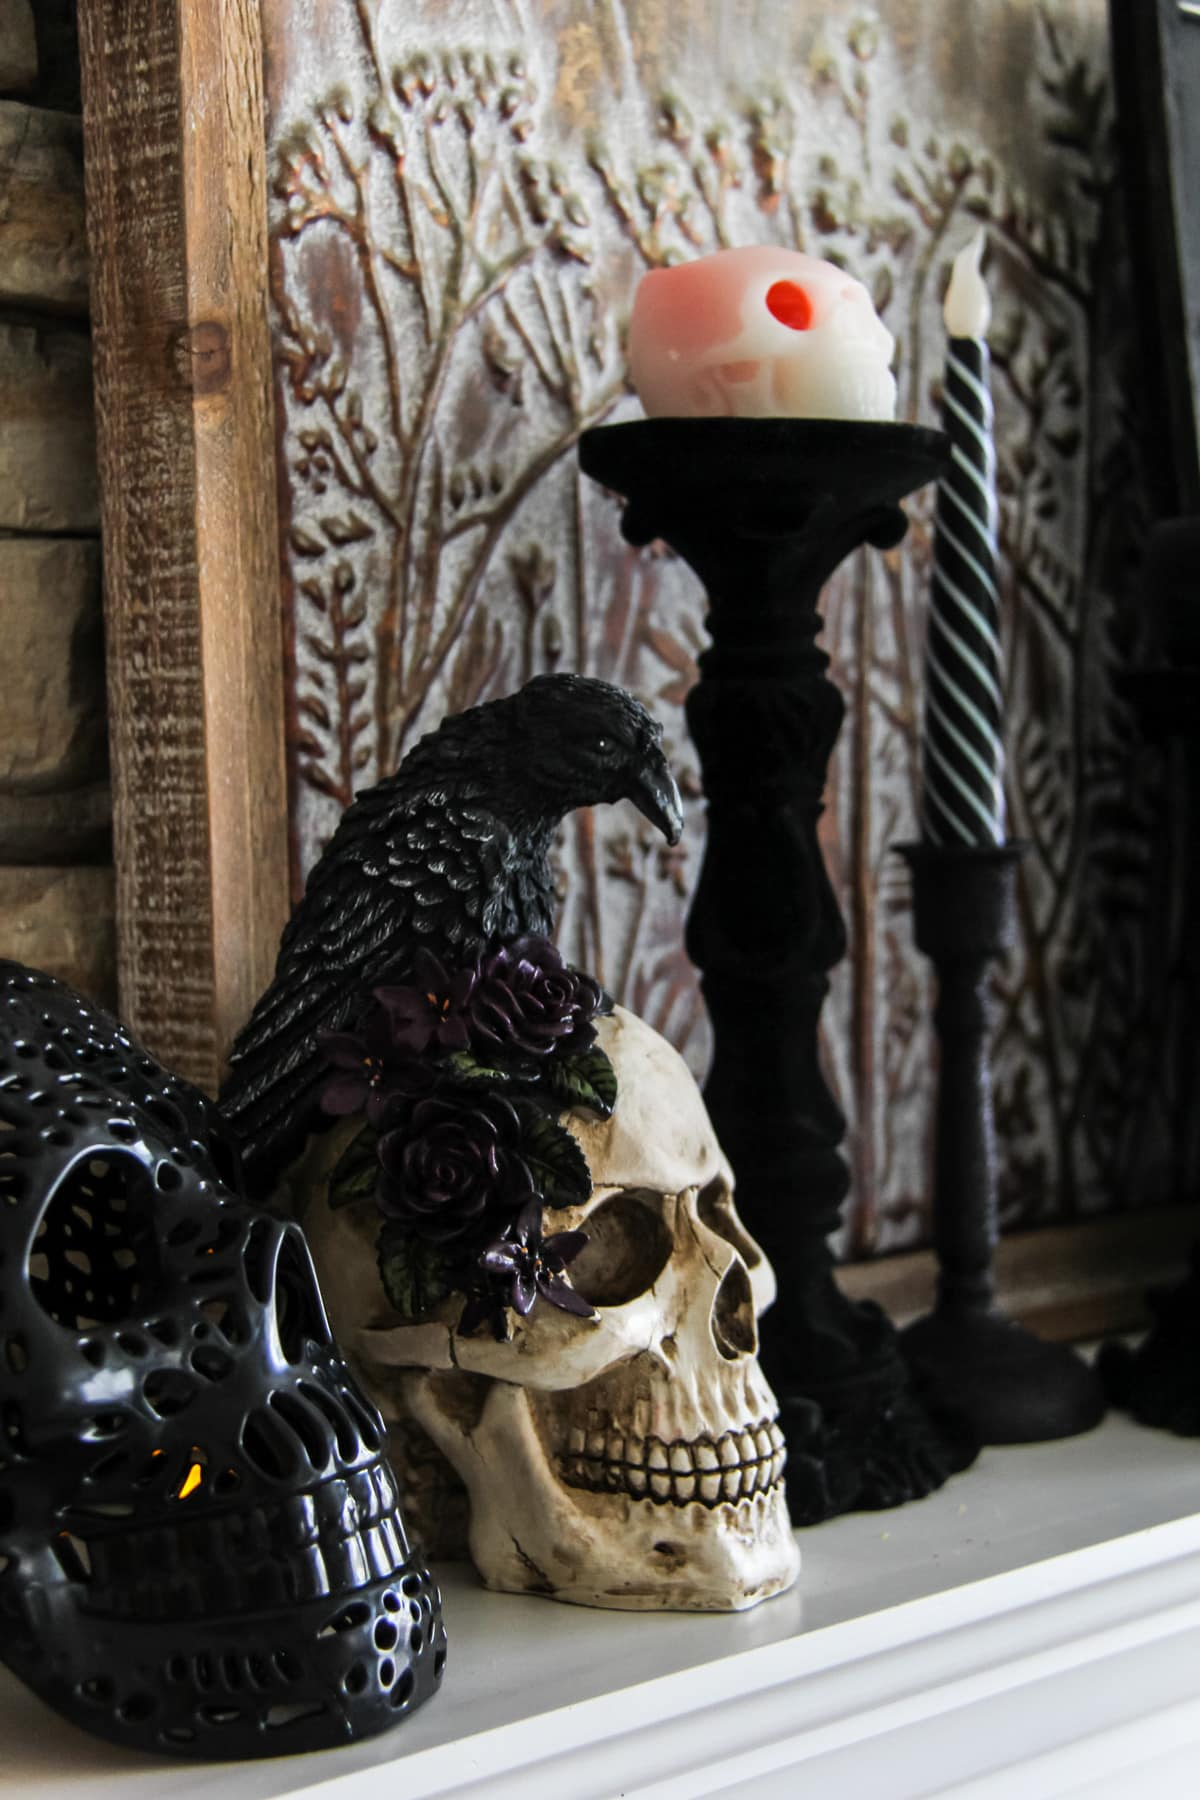 a skull decoration with a black crow, sits next to a black candle stick with a skull candle